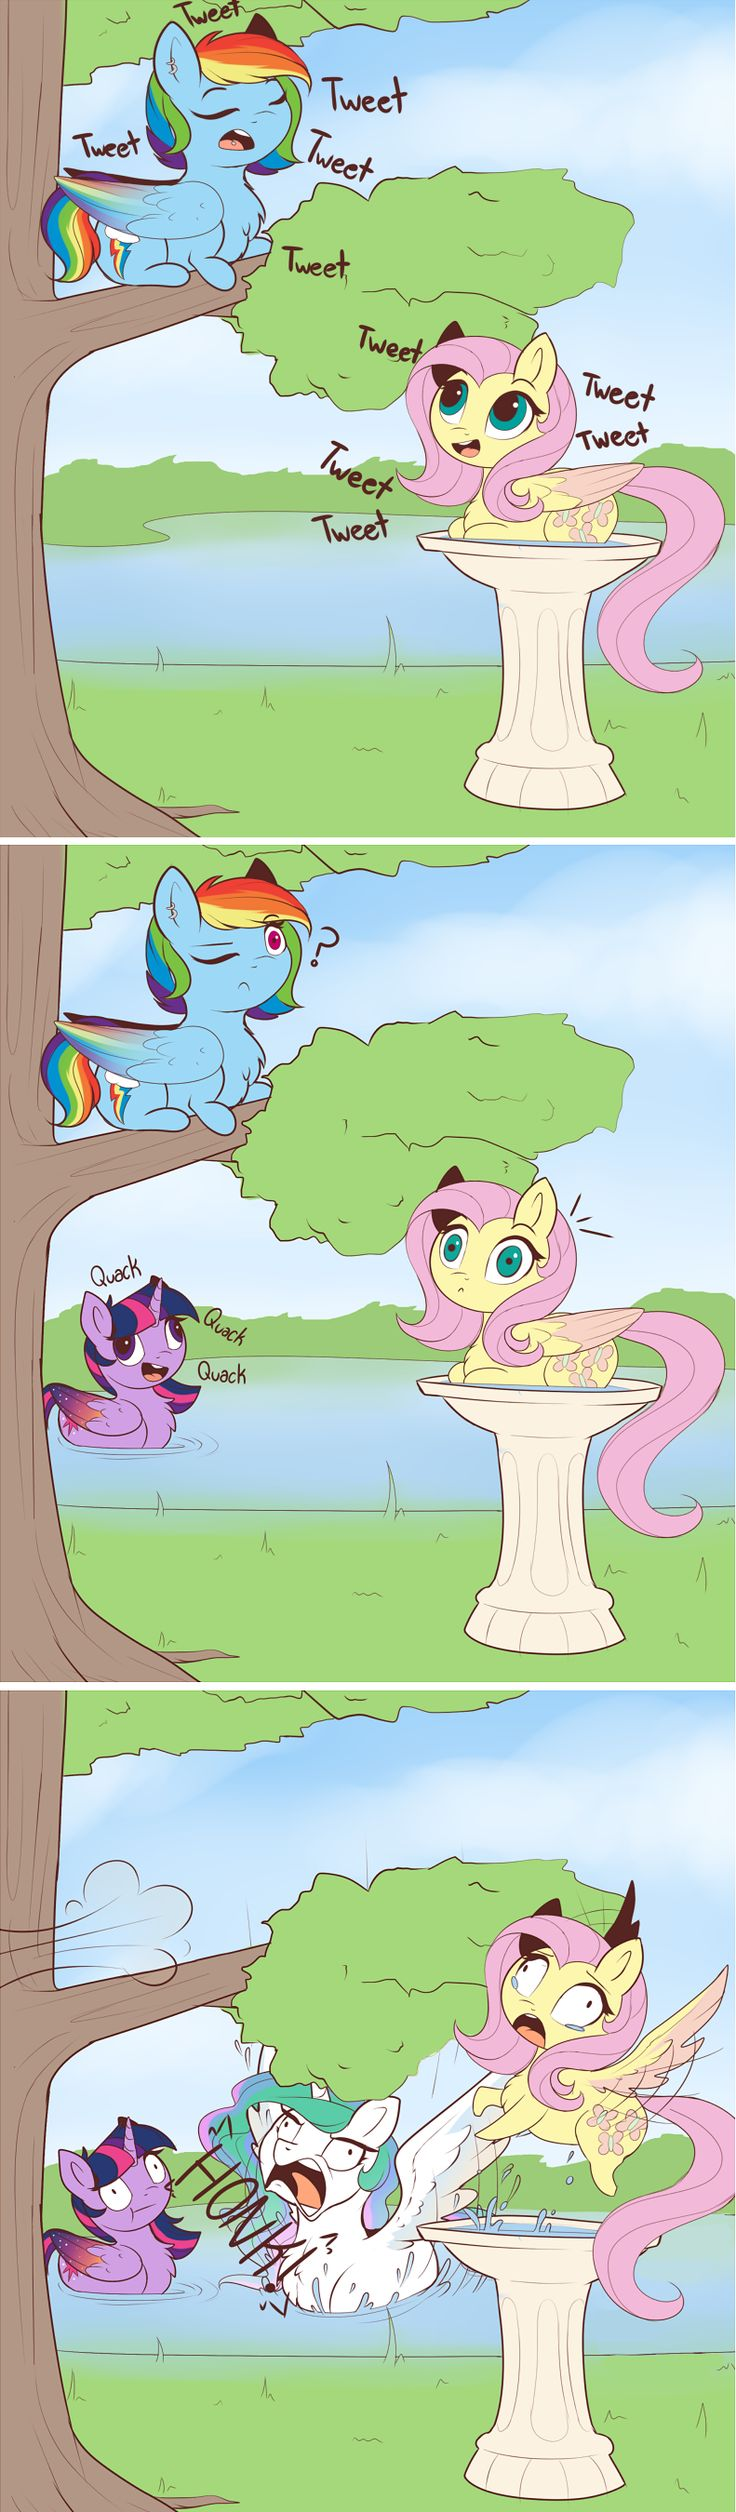 Rainbow dash: Tweet tweet tweet   Fluttershy: Tweets back at Rainbowdash   Twilight: *Comes to the pond* Quack quack quack   Celestia: *Flys in from out of nowhere* HoNk